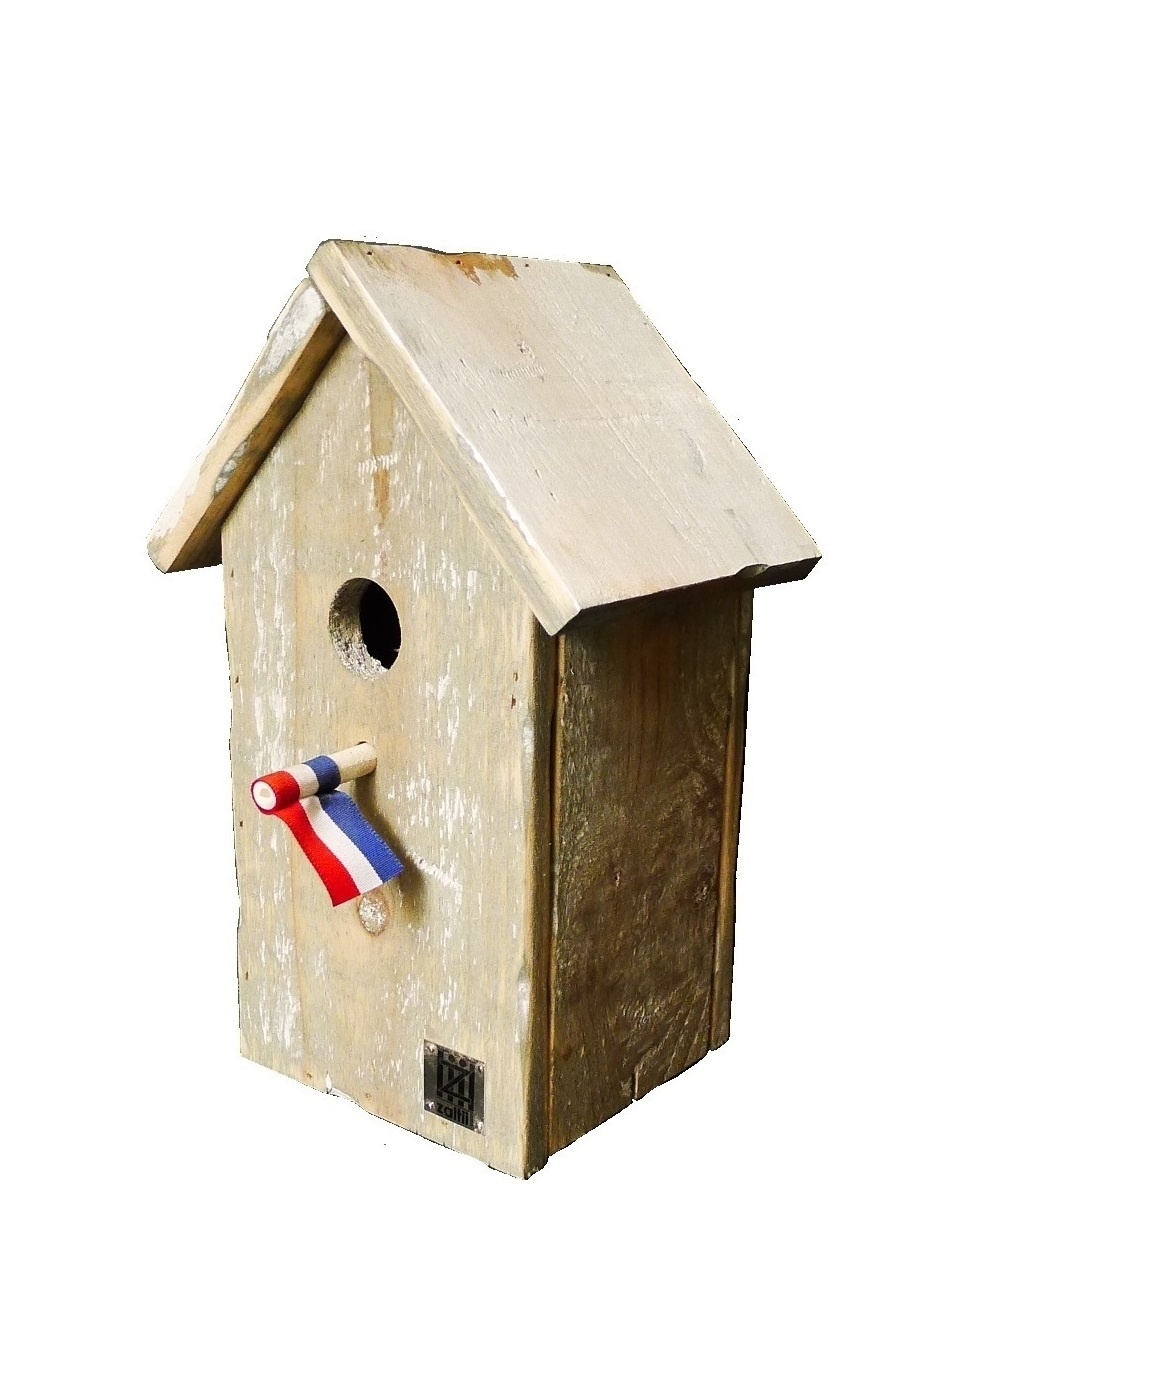 birdhouse old dutch stB pointed roof-4